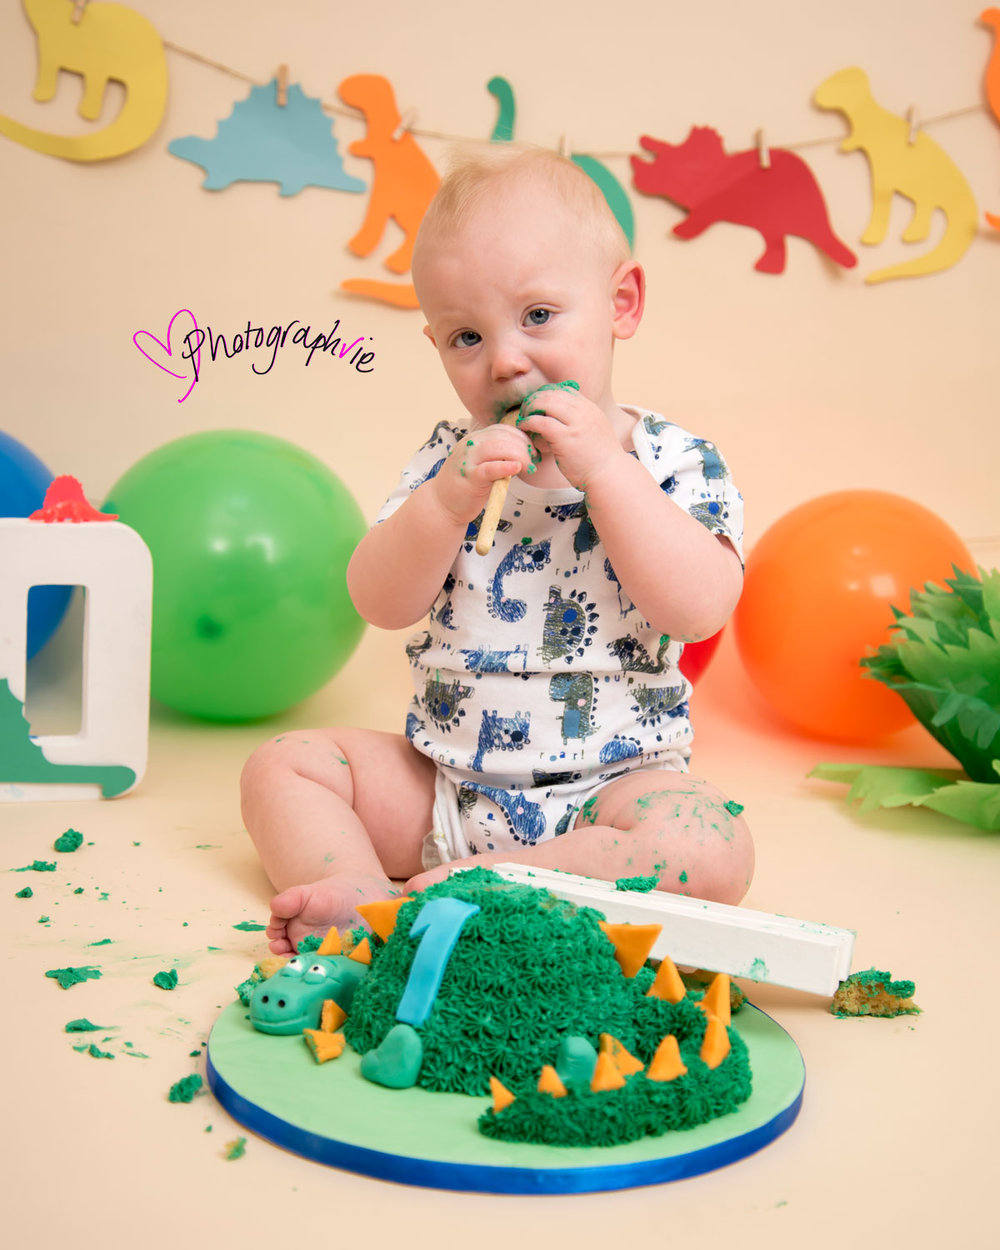 Cake_smash_photography_Ely_Cambridgeshire_first_birthday_dinosaur_themed_boy_eating_cake.jpg